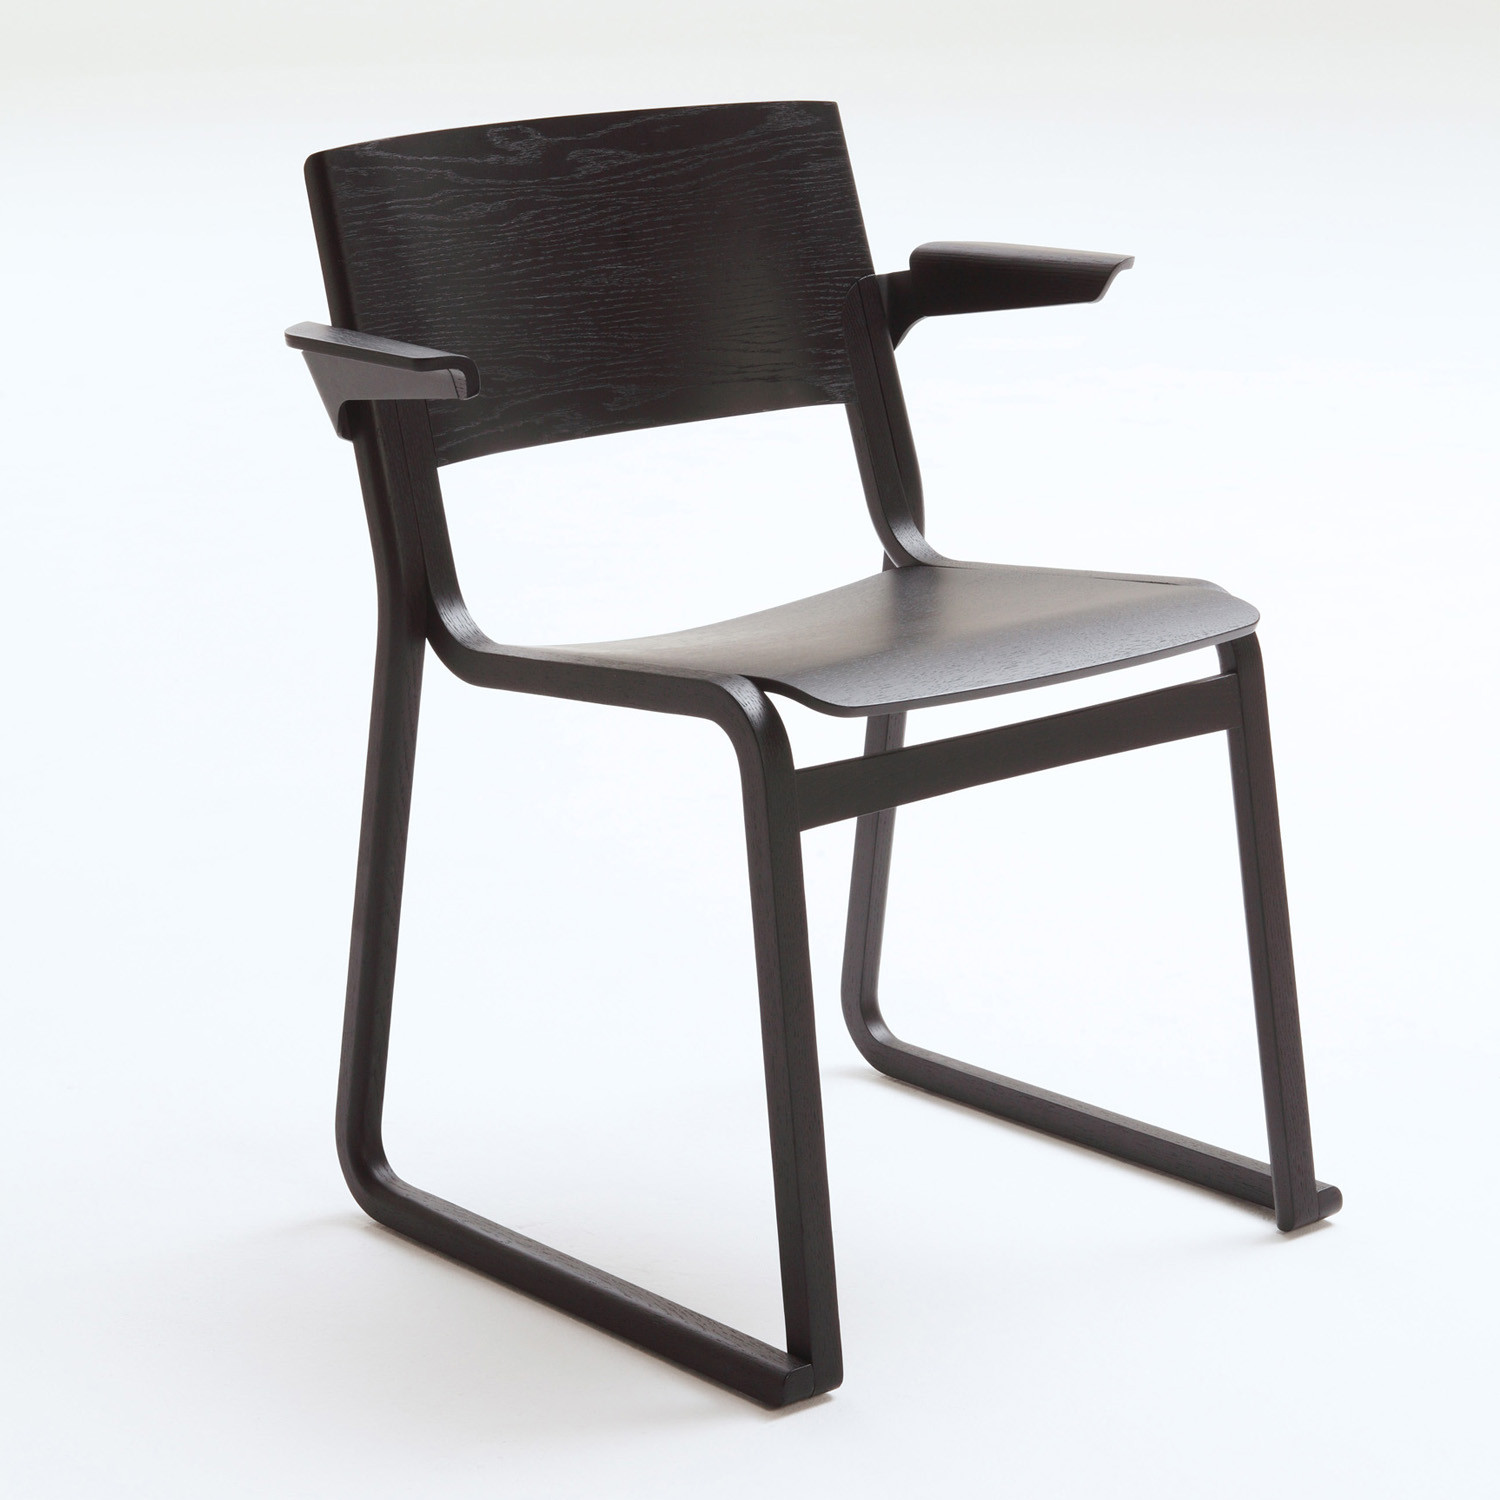 Theo Chair with armrests